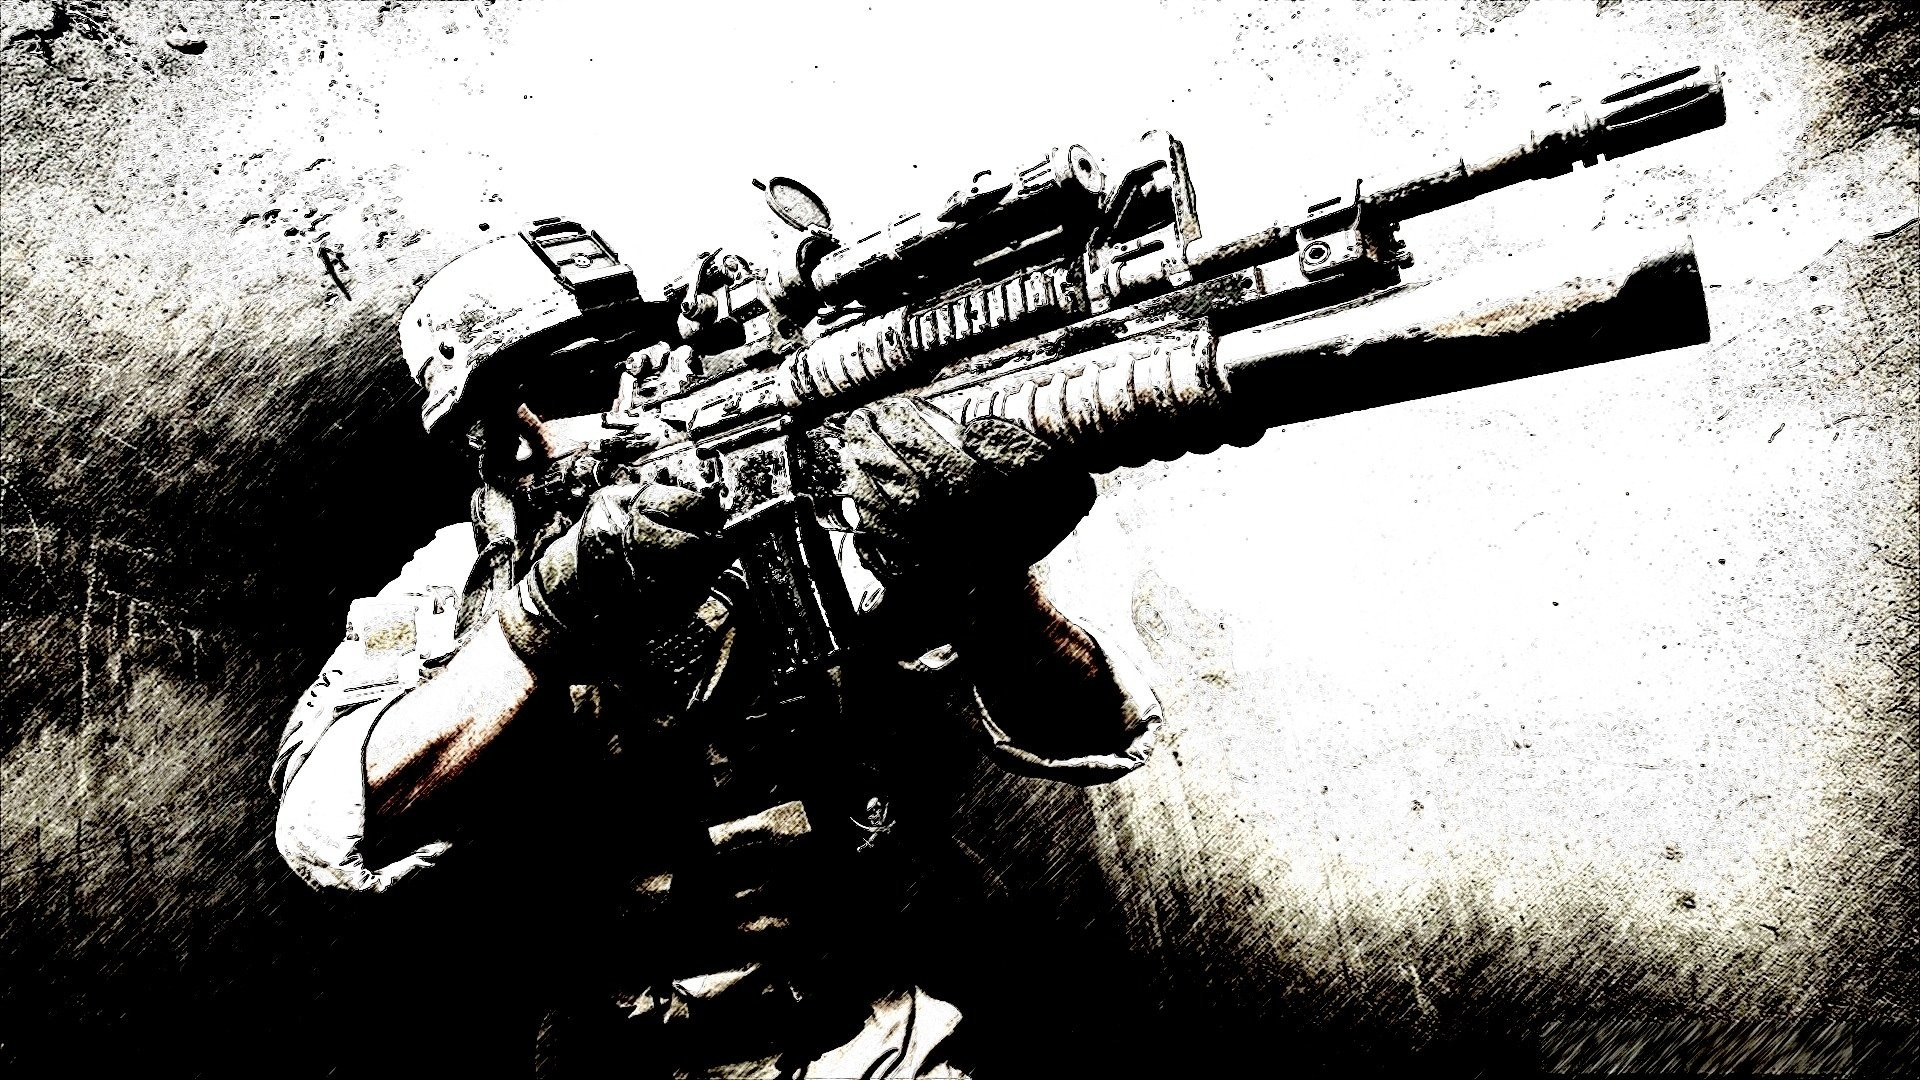 1920x1080 Military - Soldier Marine Wallpaper